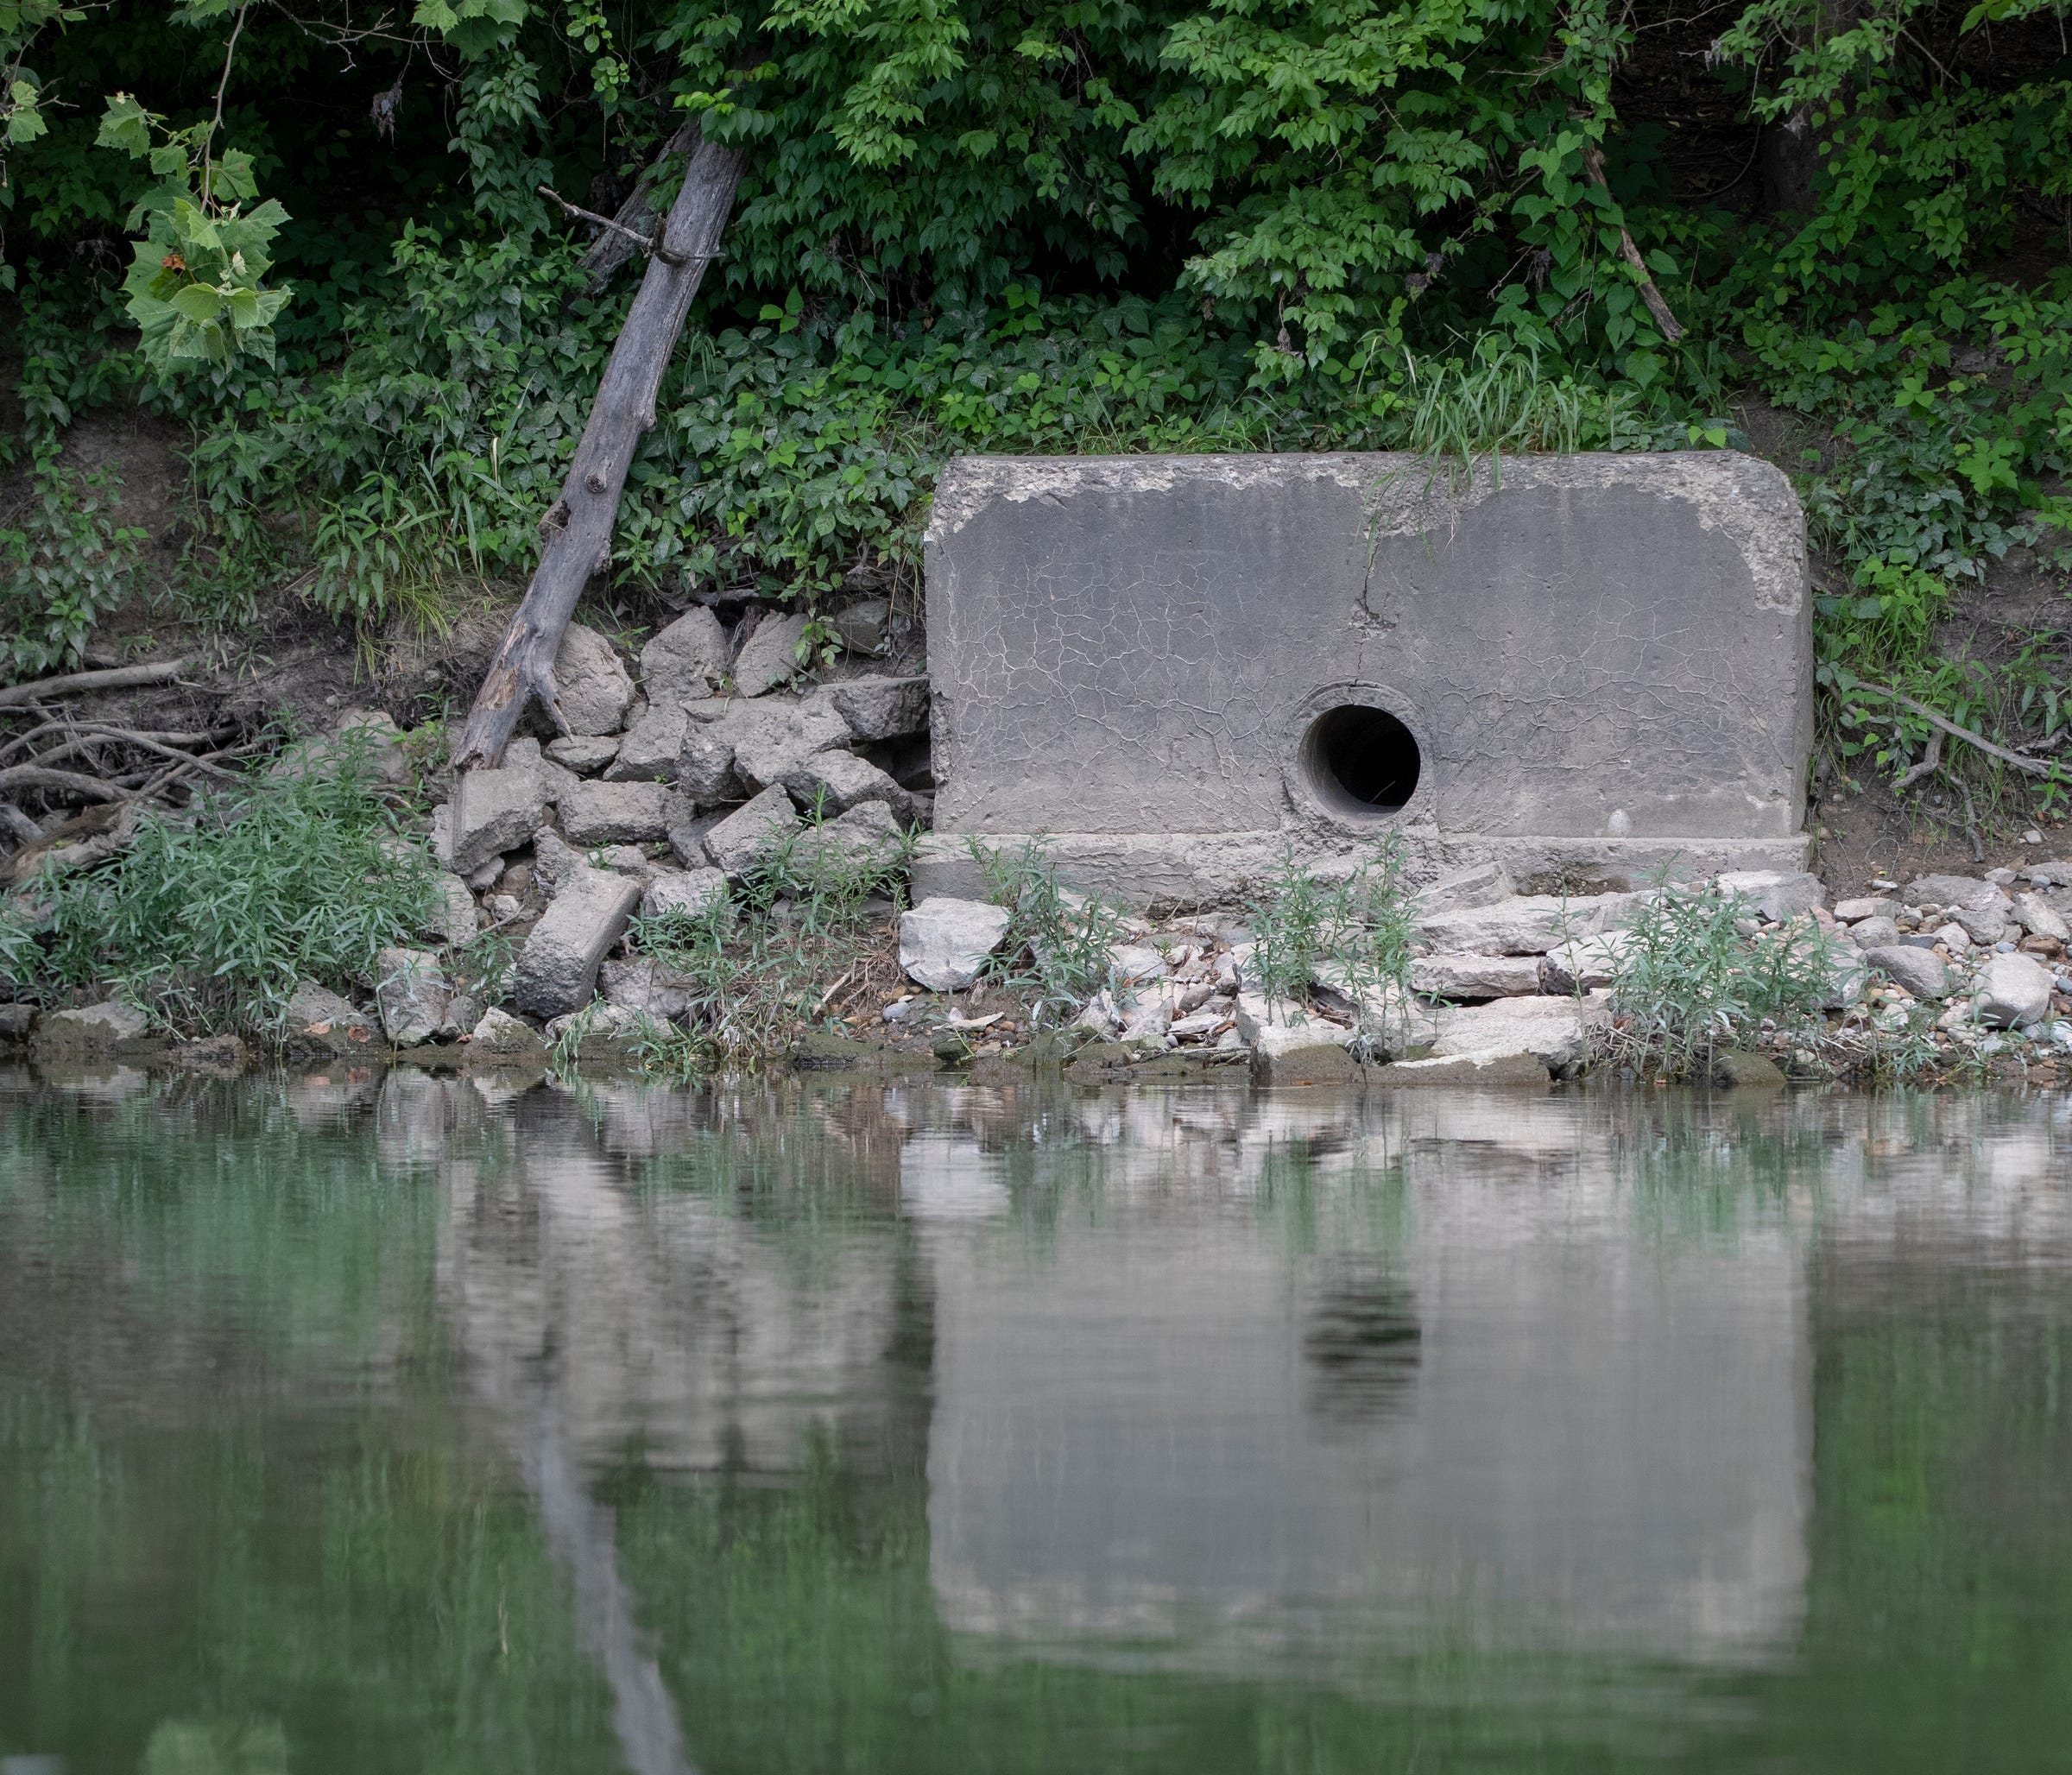 A combined sewer overflow pipe along the White River that can contain raw sewage or stormwater runoff, which brings a myriad of pollutants into local waterways in Indianapolis, as seen on Thursday, July 11, 2019.